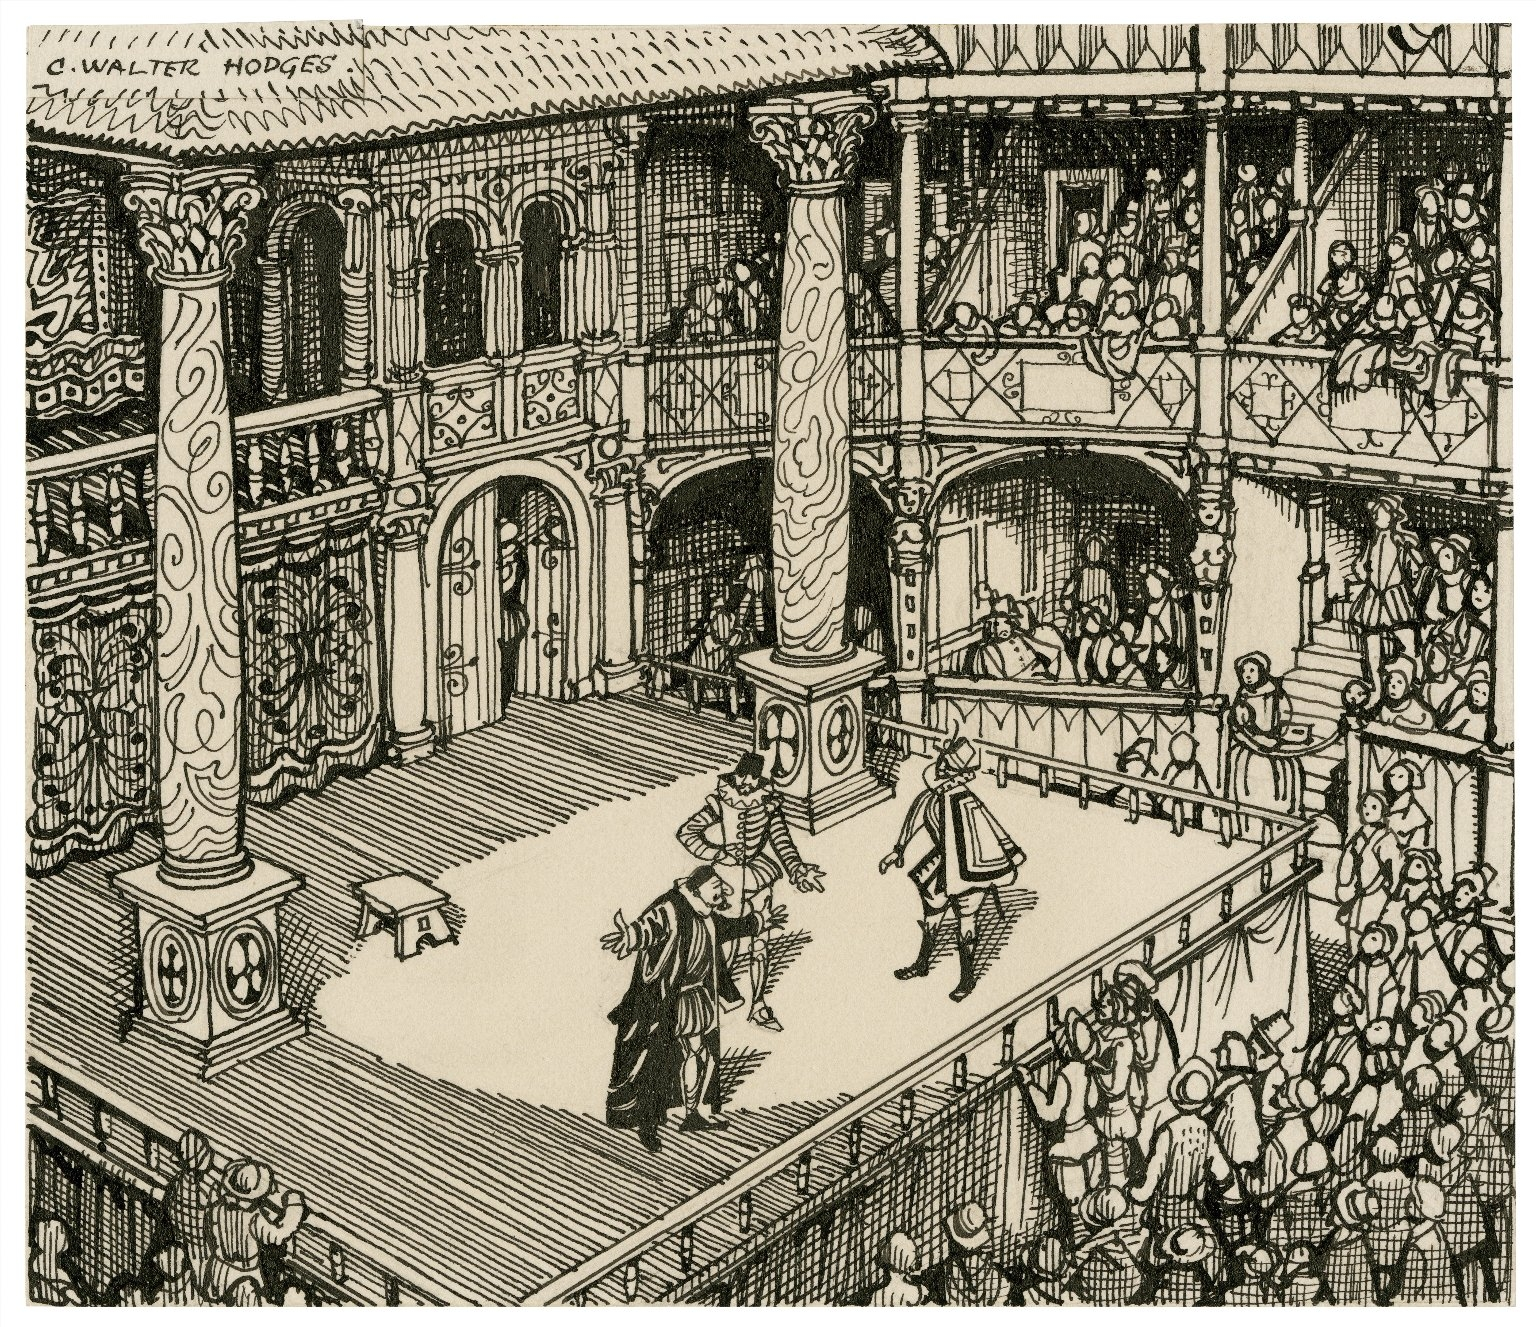 elizabethan theatre The 'theatre' was built in a similar style to the roman coliseum, but on a smaller scale the elizabethan amphitheatre was designed to hold a capacity of up to 3000 people.